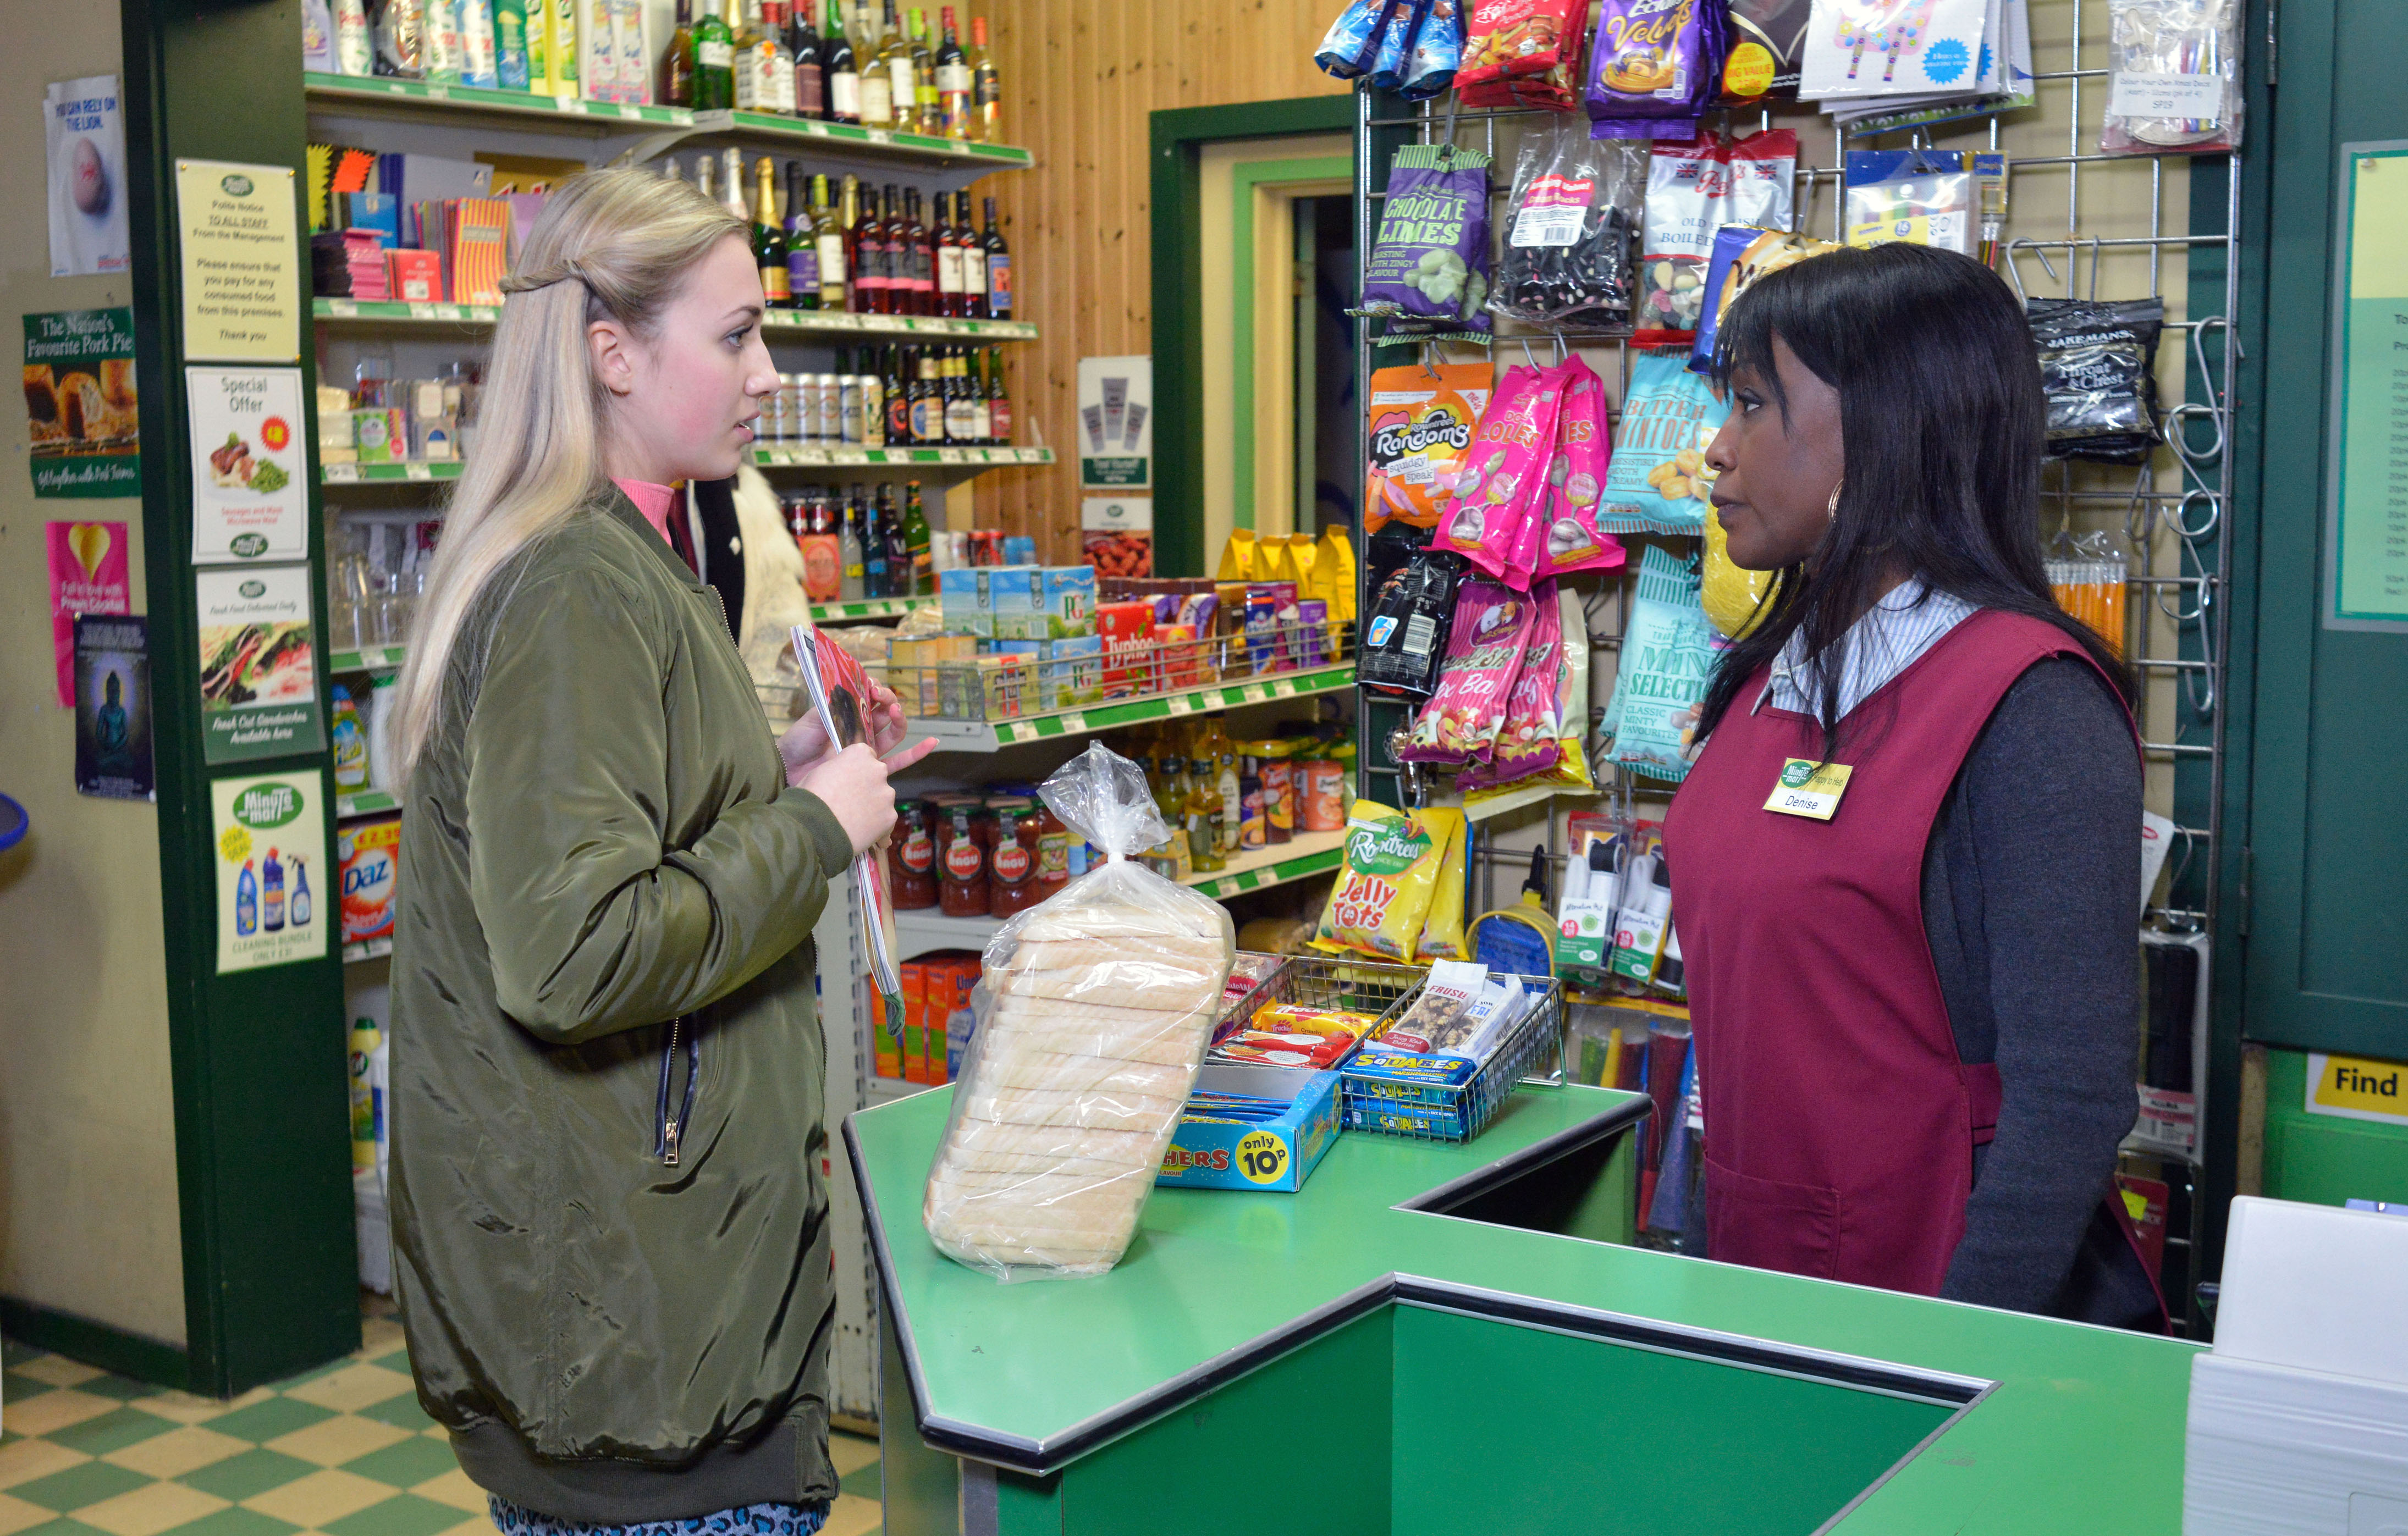 EastEnders spoilers: Denise catches Louise shoplifting – but is the Mitchell youngster ready to pay the price?